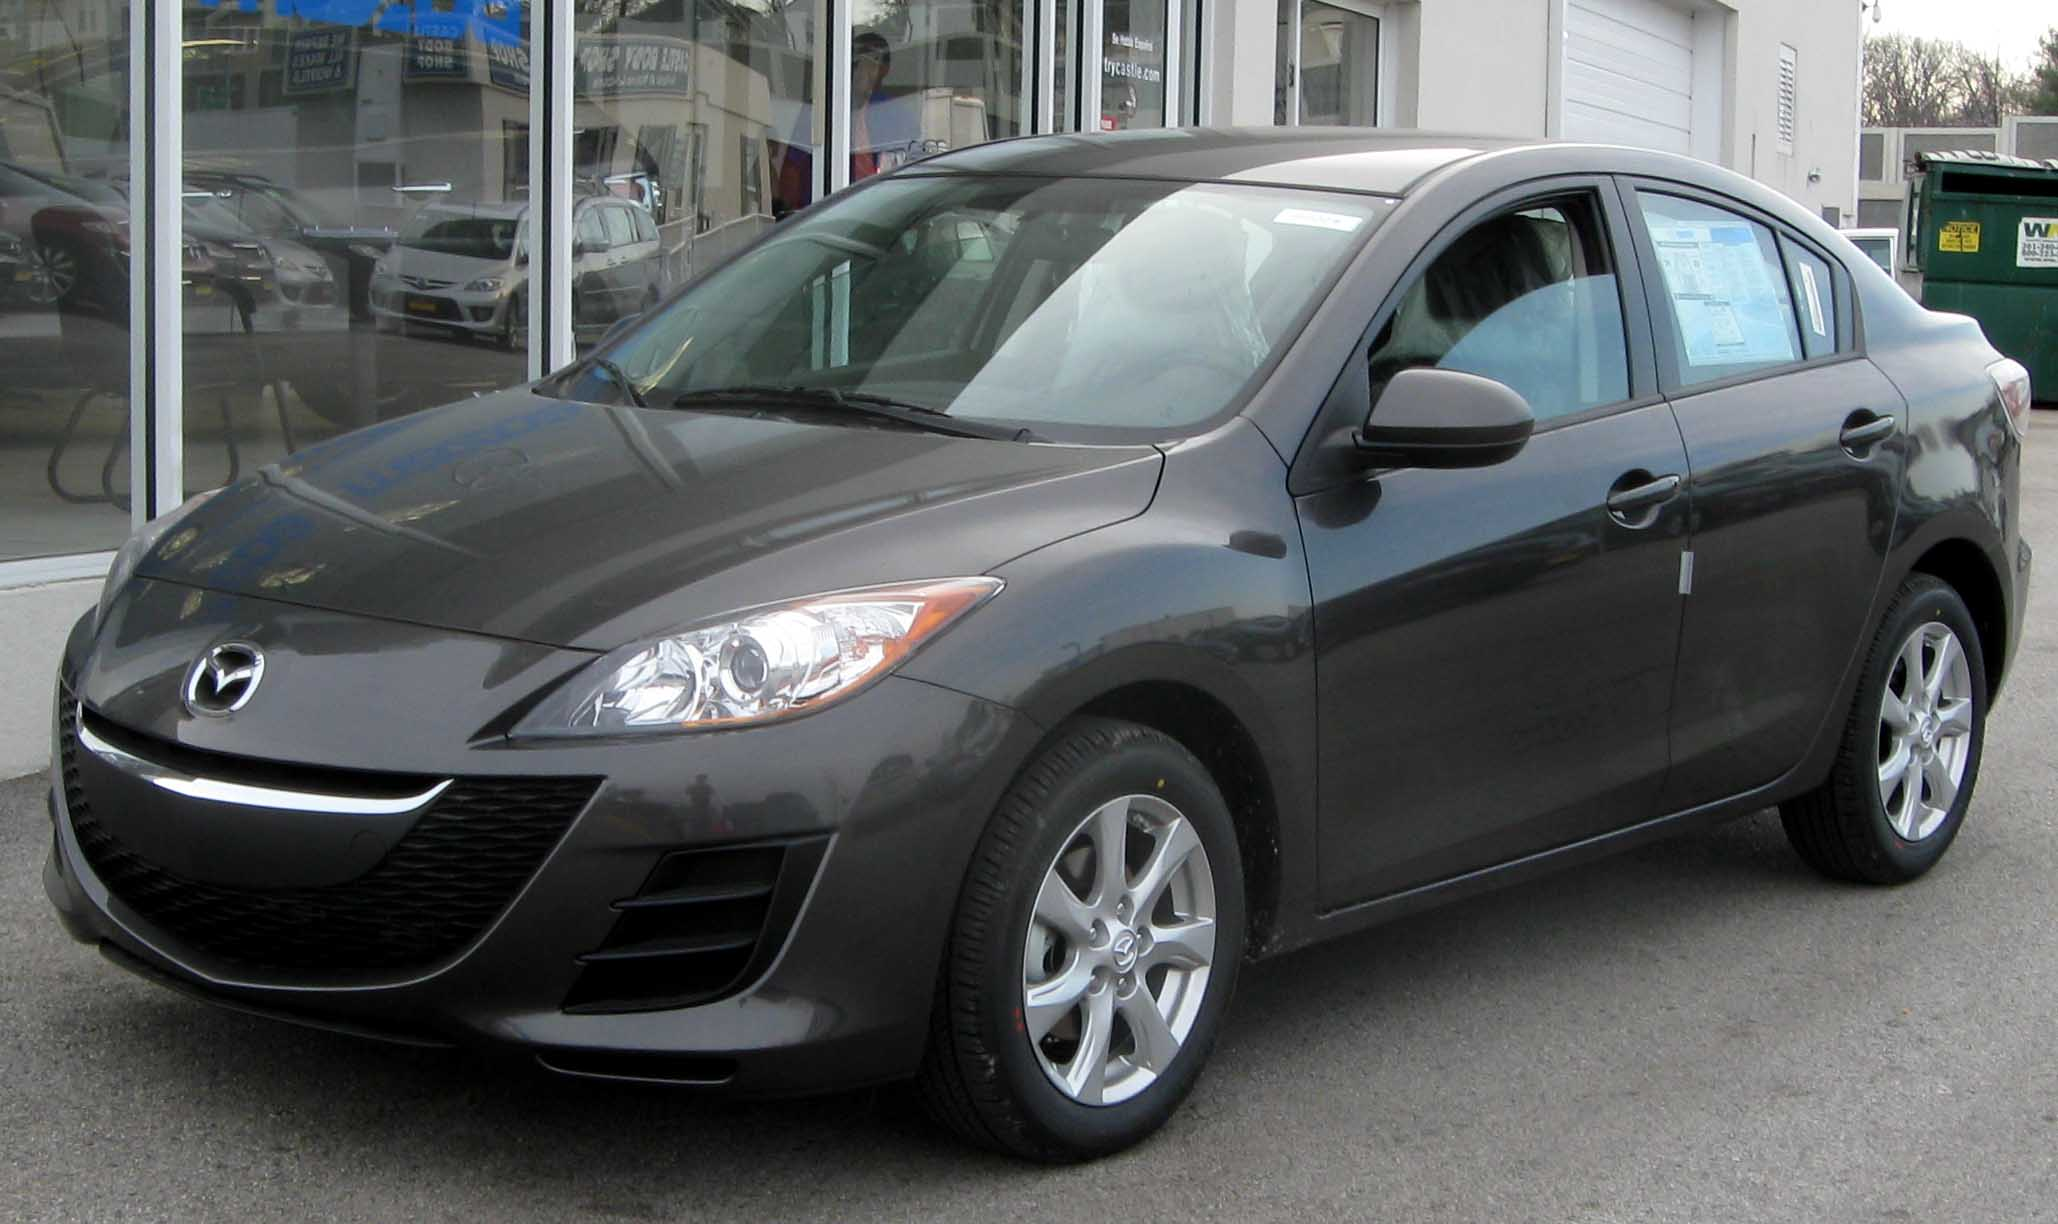 File:2010 Mazda3 i Touring sedan.jpg - Wikimedia Commons